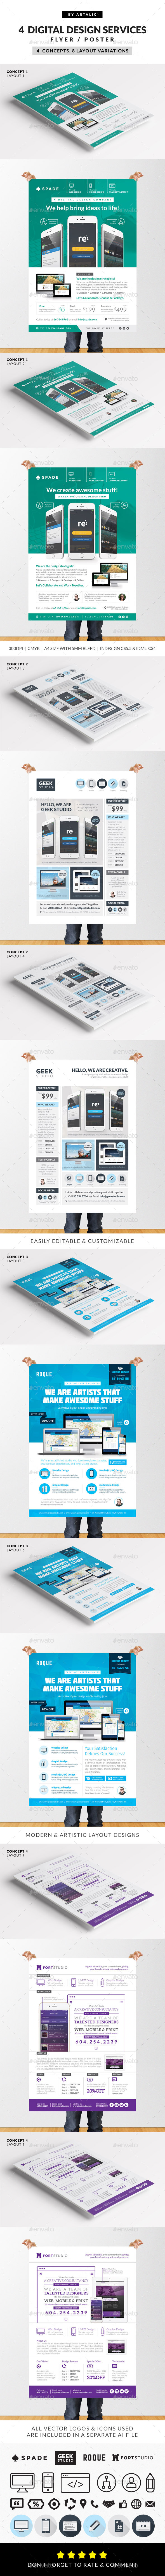 design web app graphic services flyer poster for these digital design website mobile application graphic services flyer poster templates is created for individuals